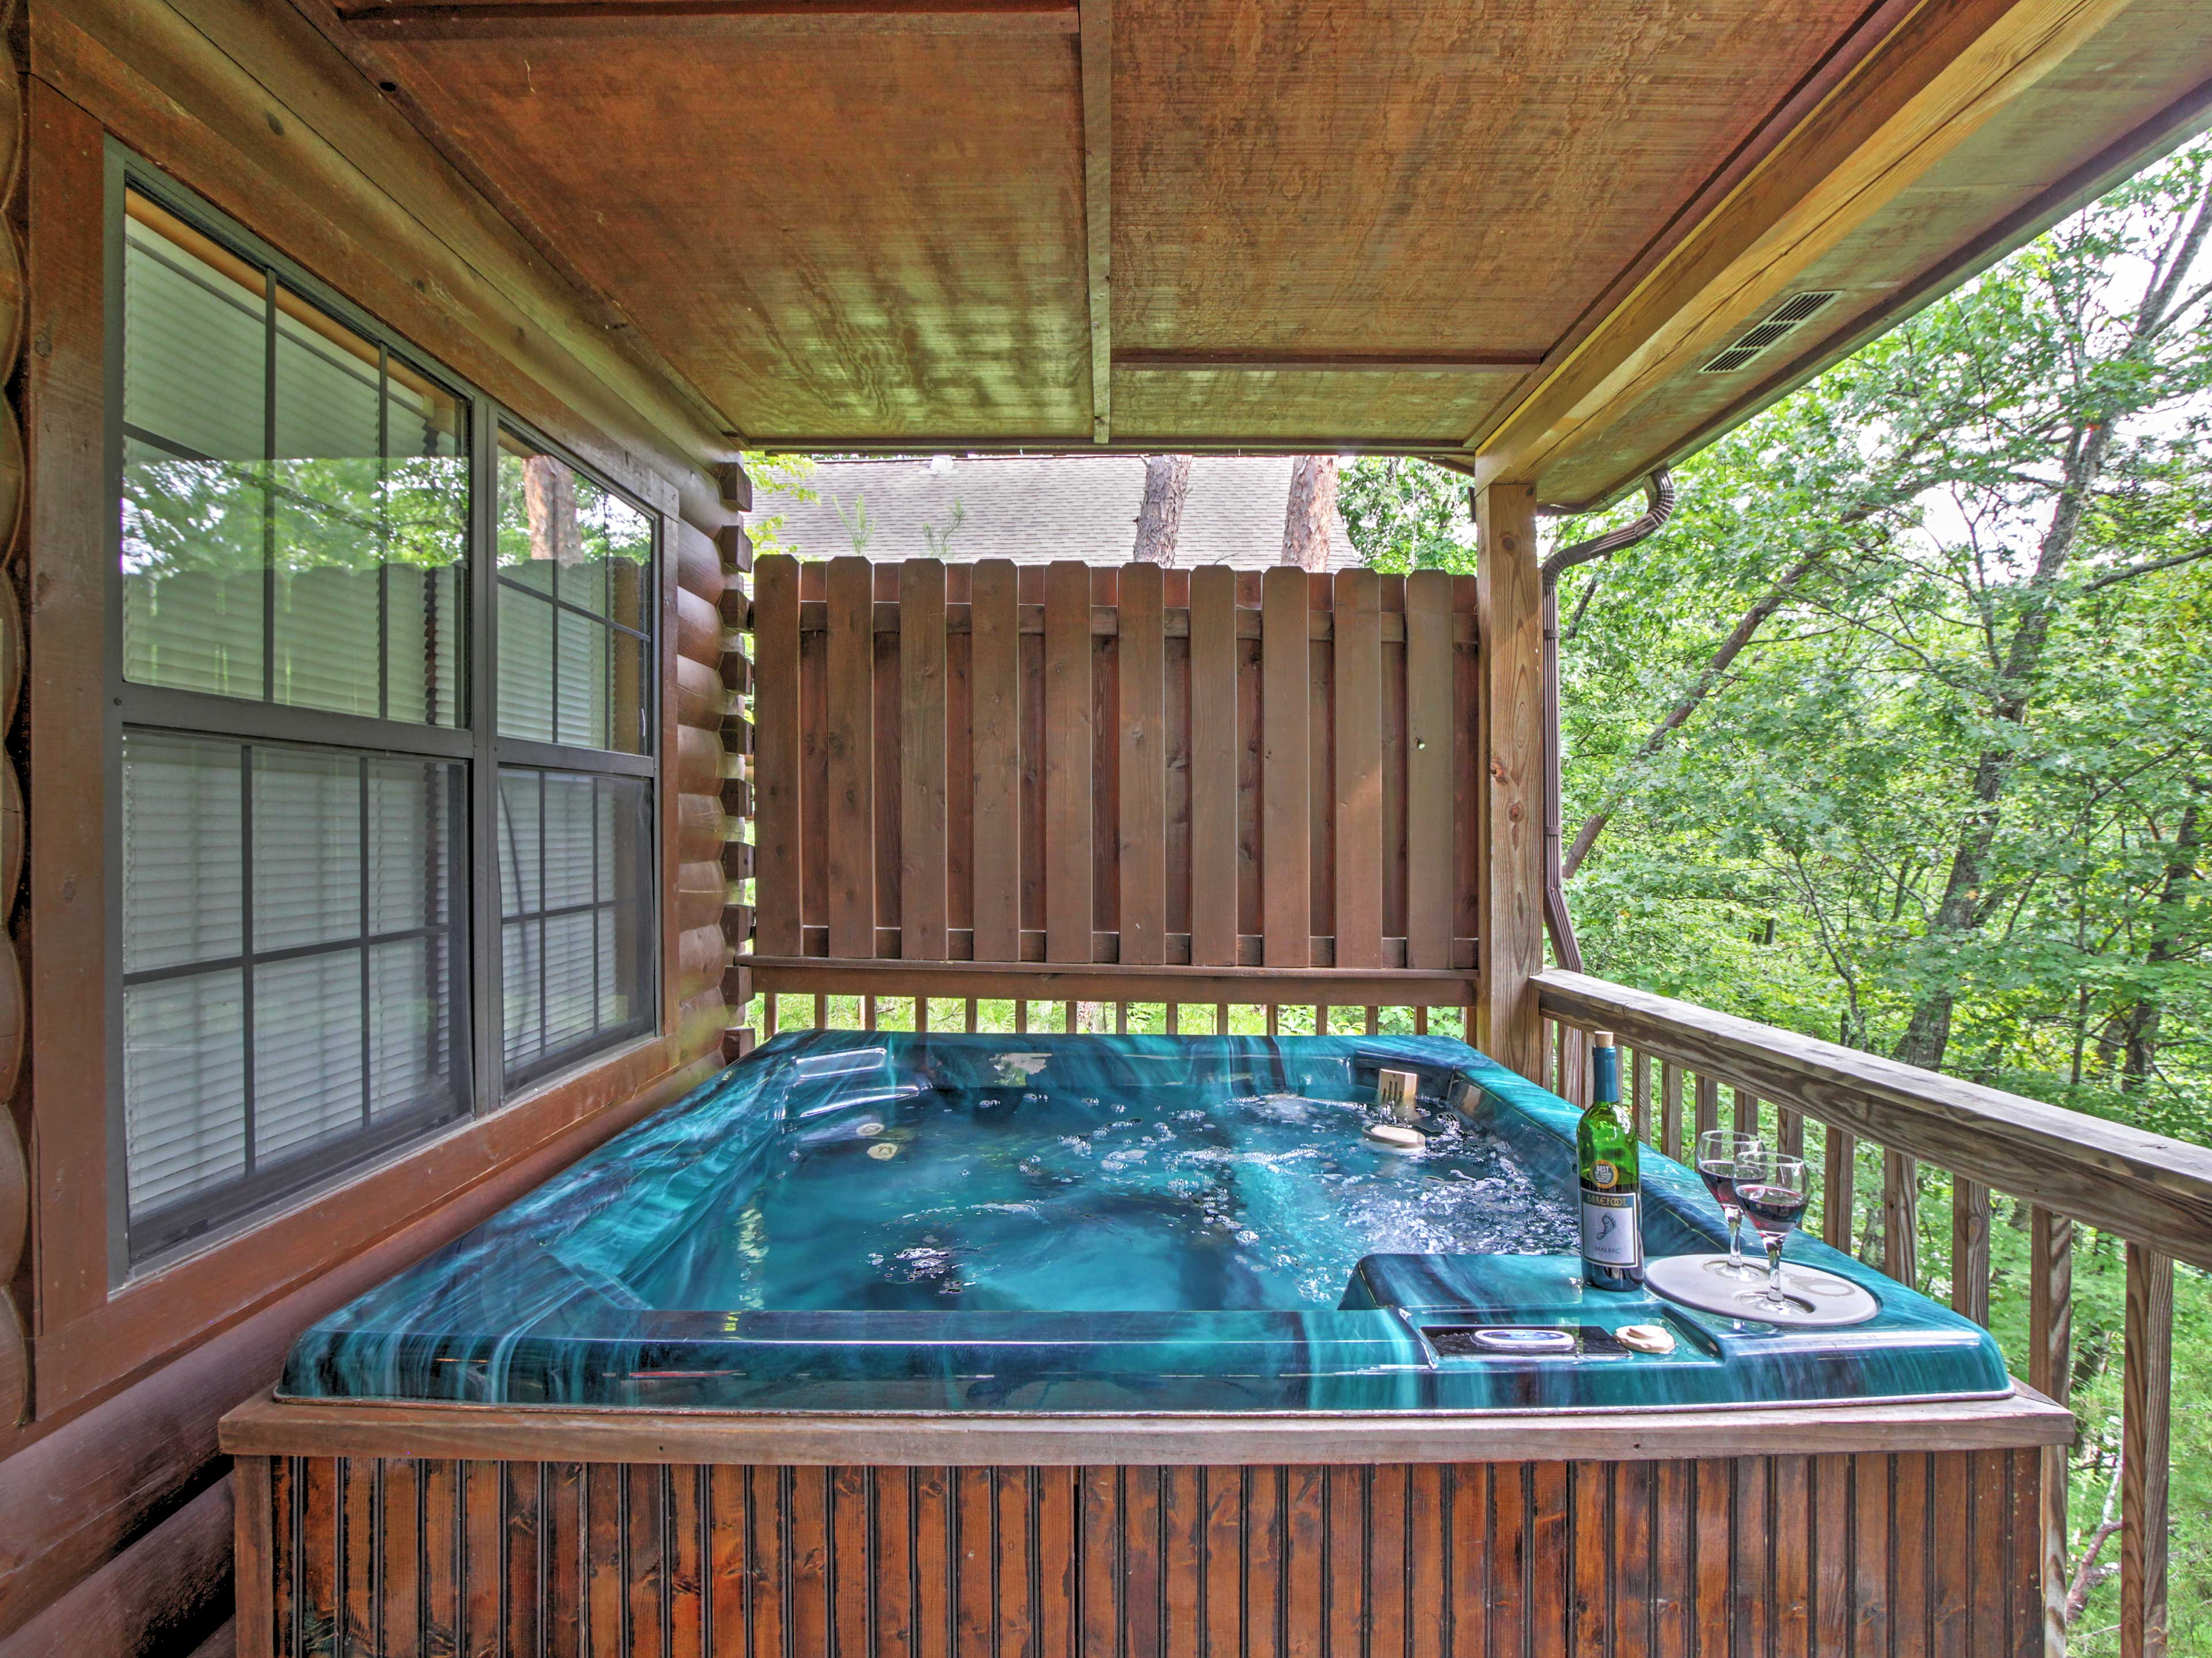 Unwind in the soothing warmth of the private hot tub.